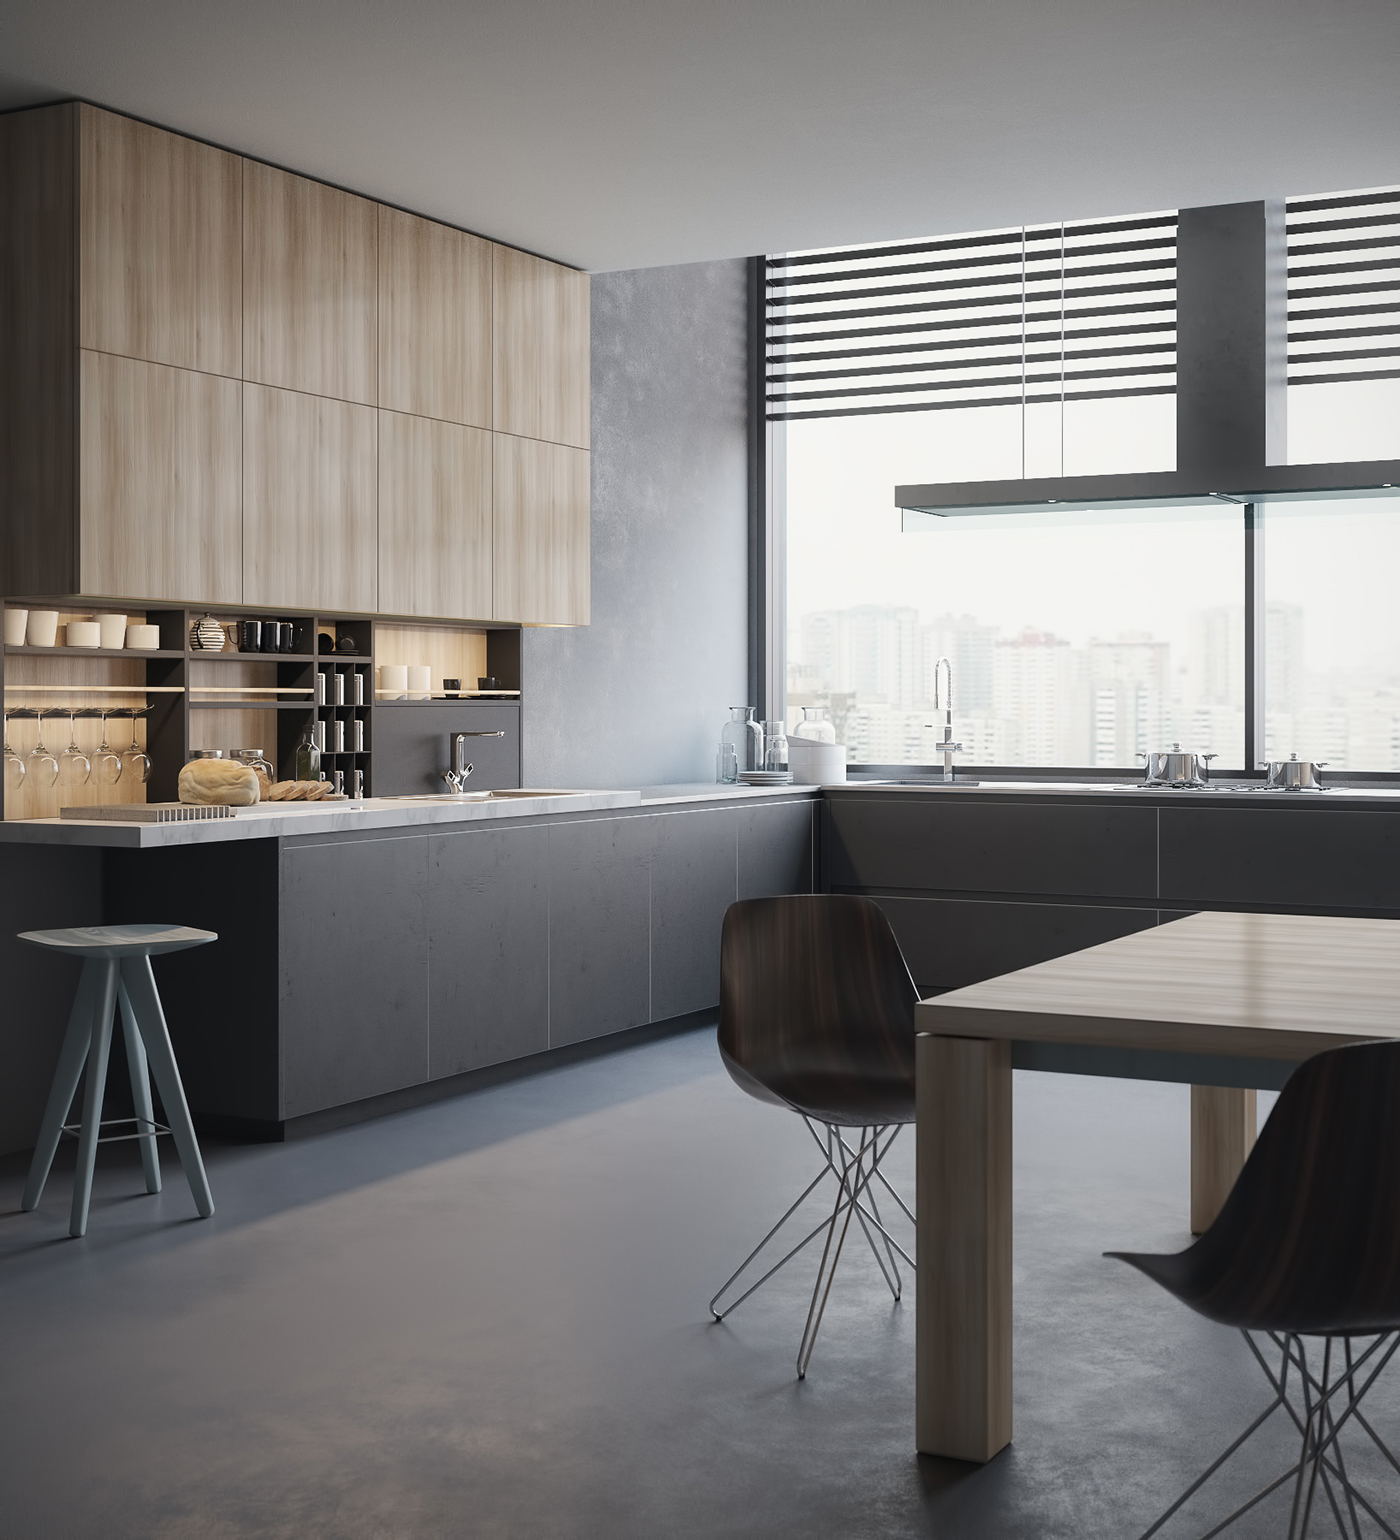 kitchen design visualizer kitchen 3d visualization poliform on behance 1400